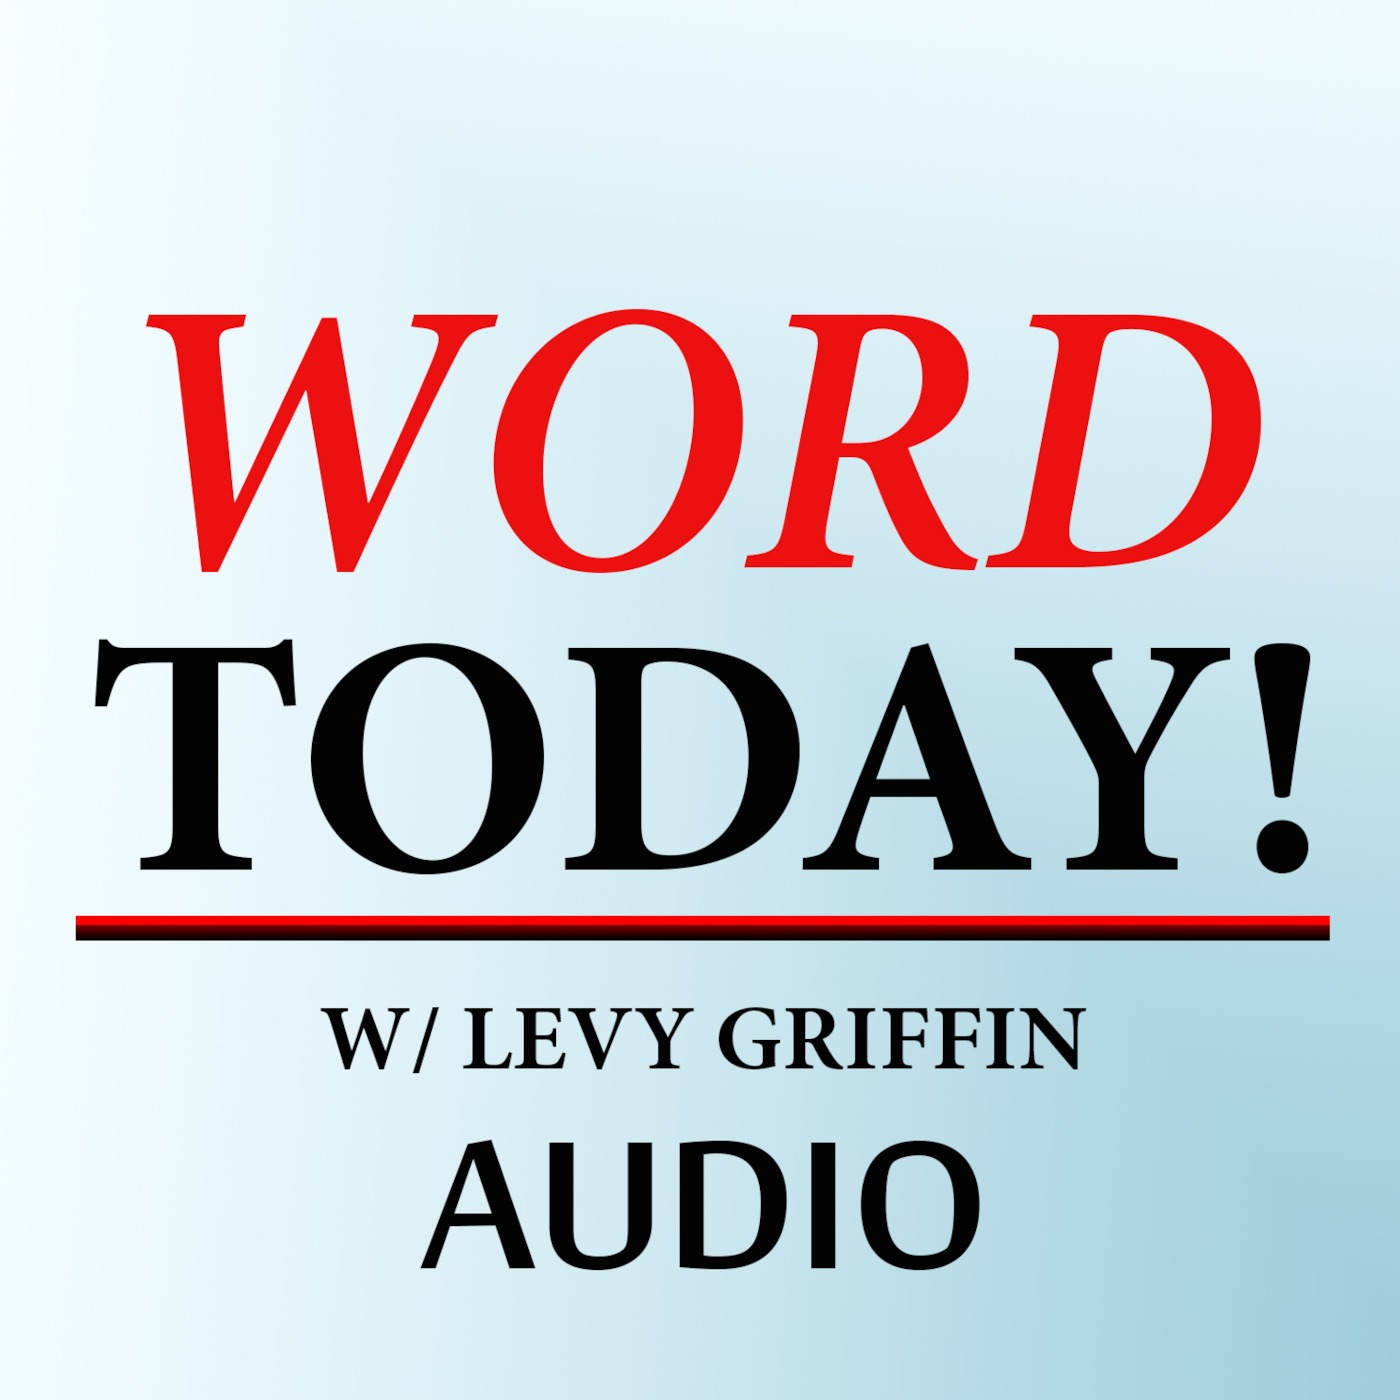 Levy Griffin's Audio Podcast